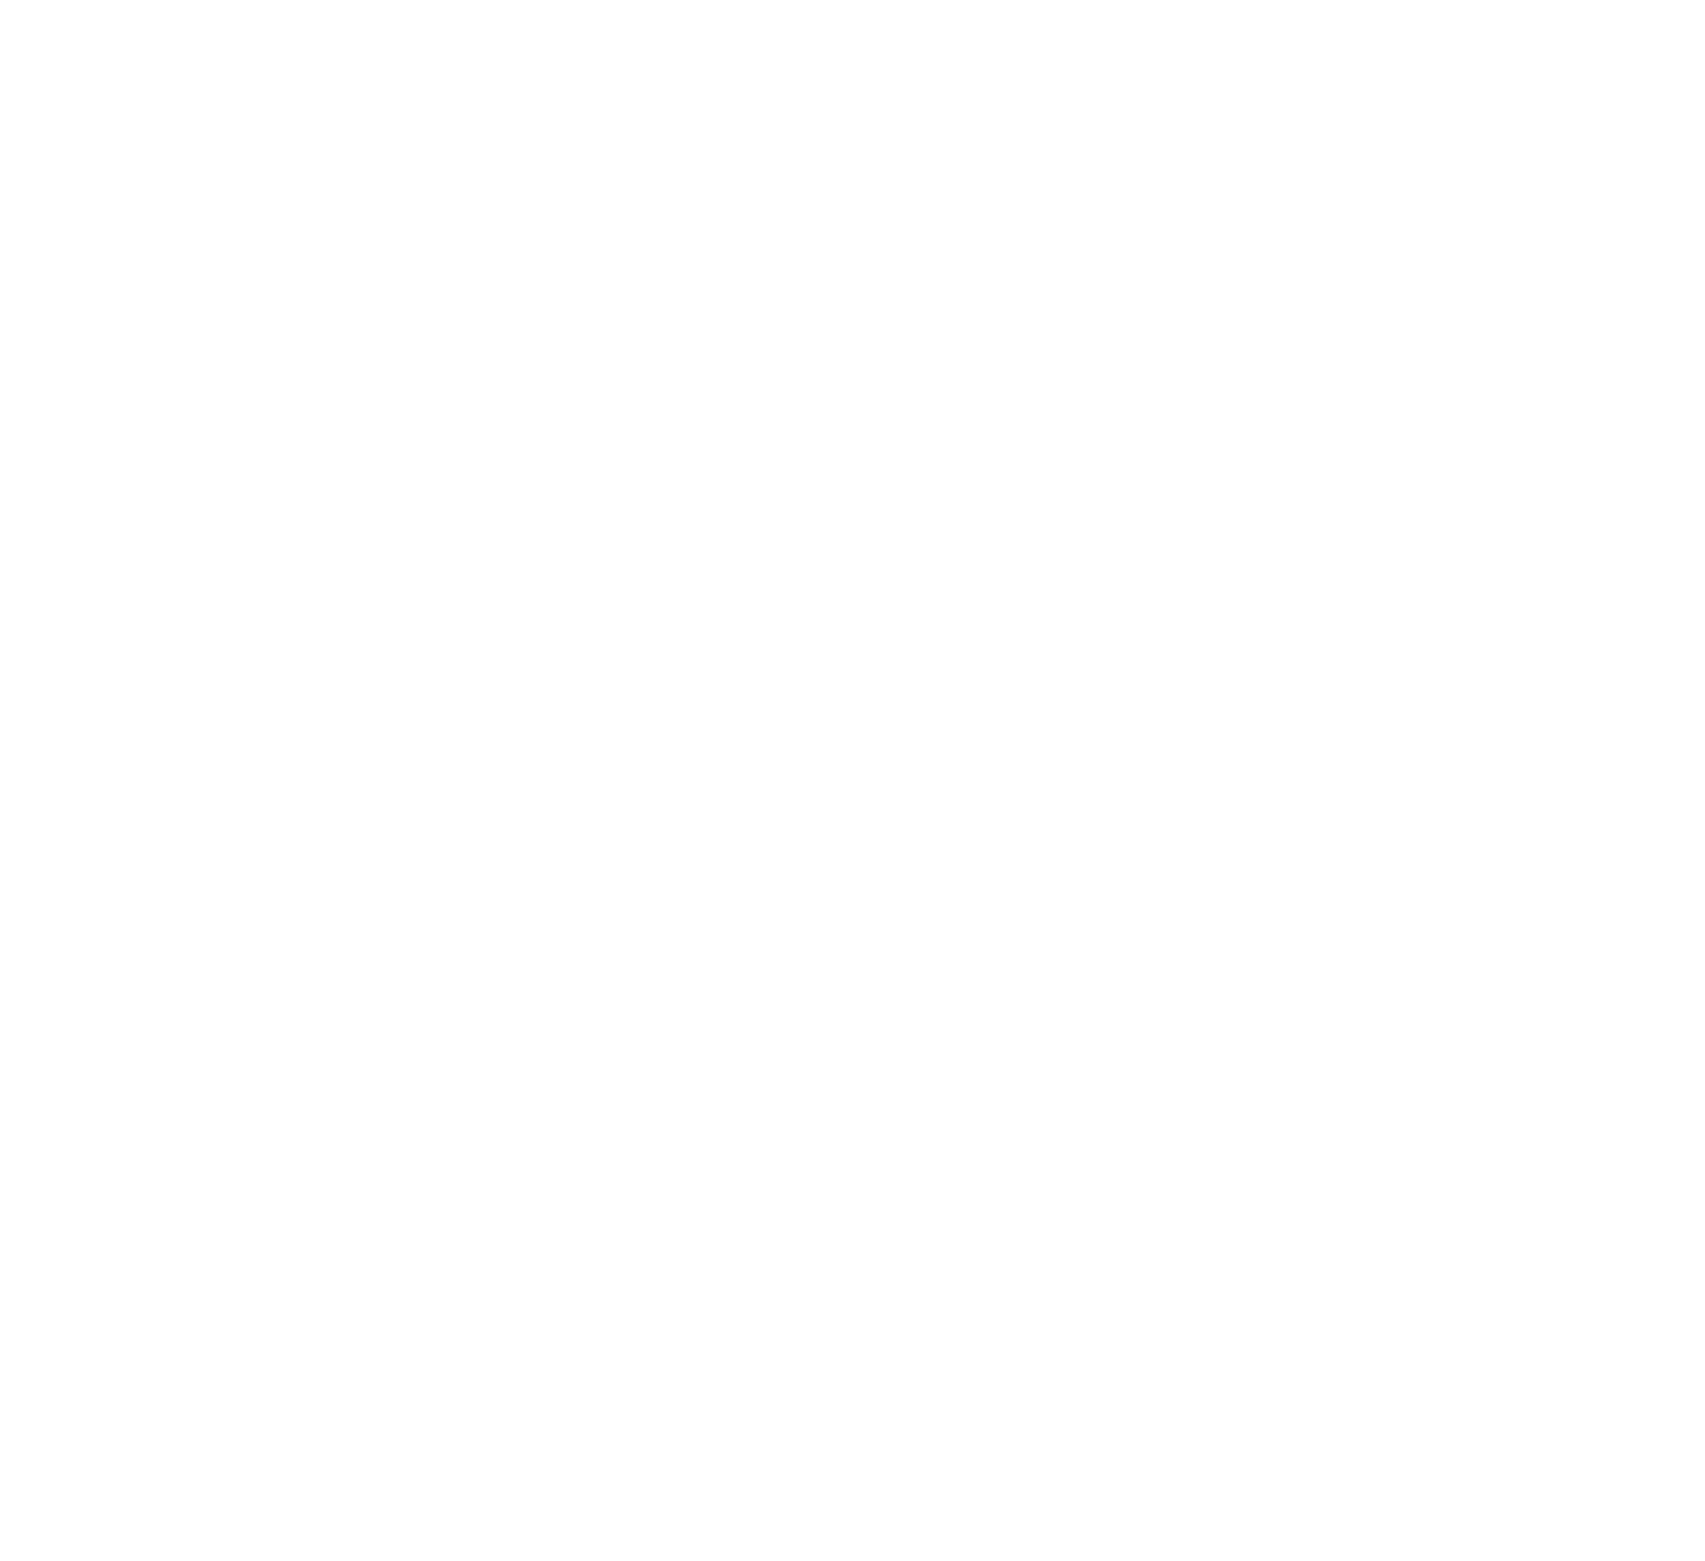 chess-piece-inverted-trimmed